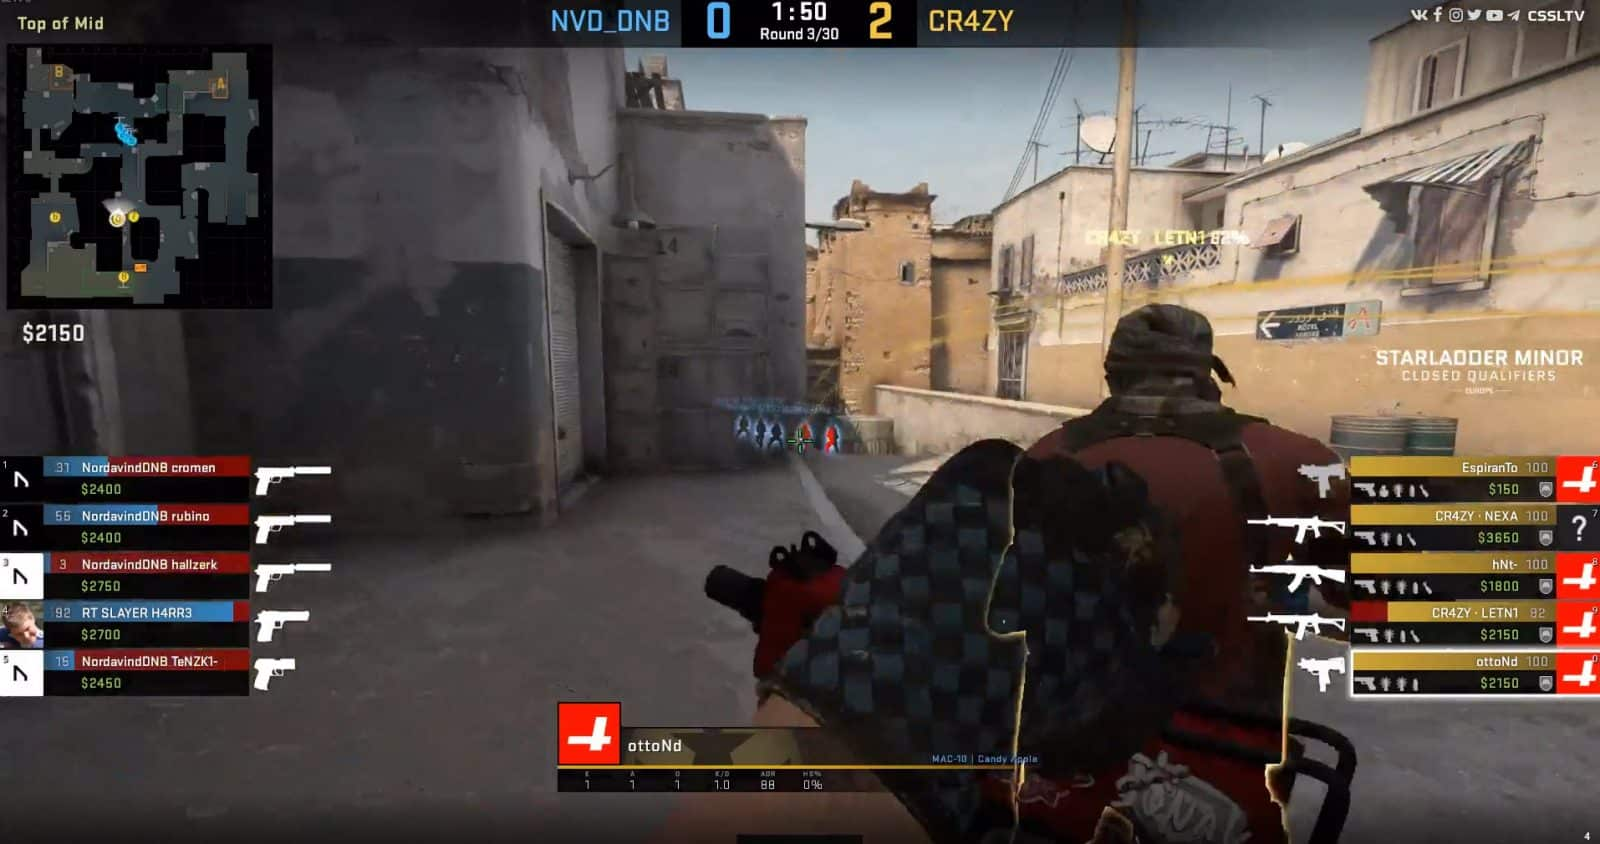 Fastest CSGO Round Win Ever Team CR4ZY Wins in 7 Seconds